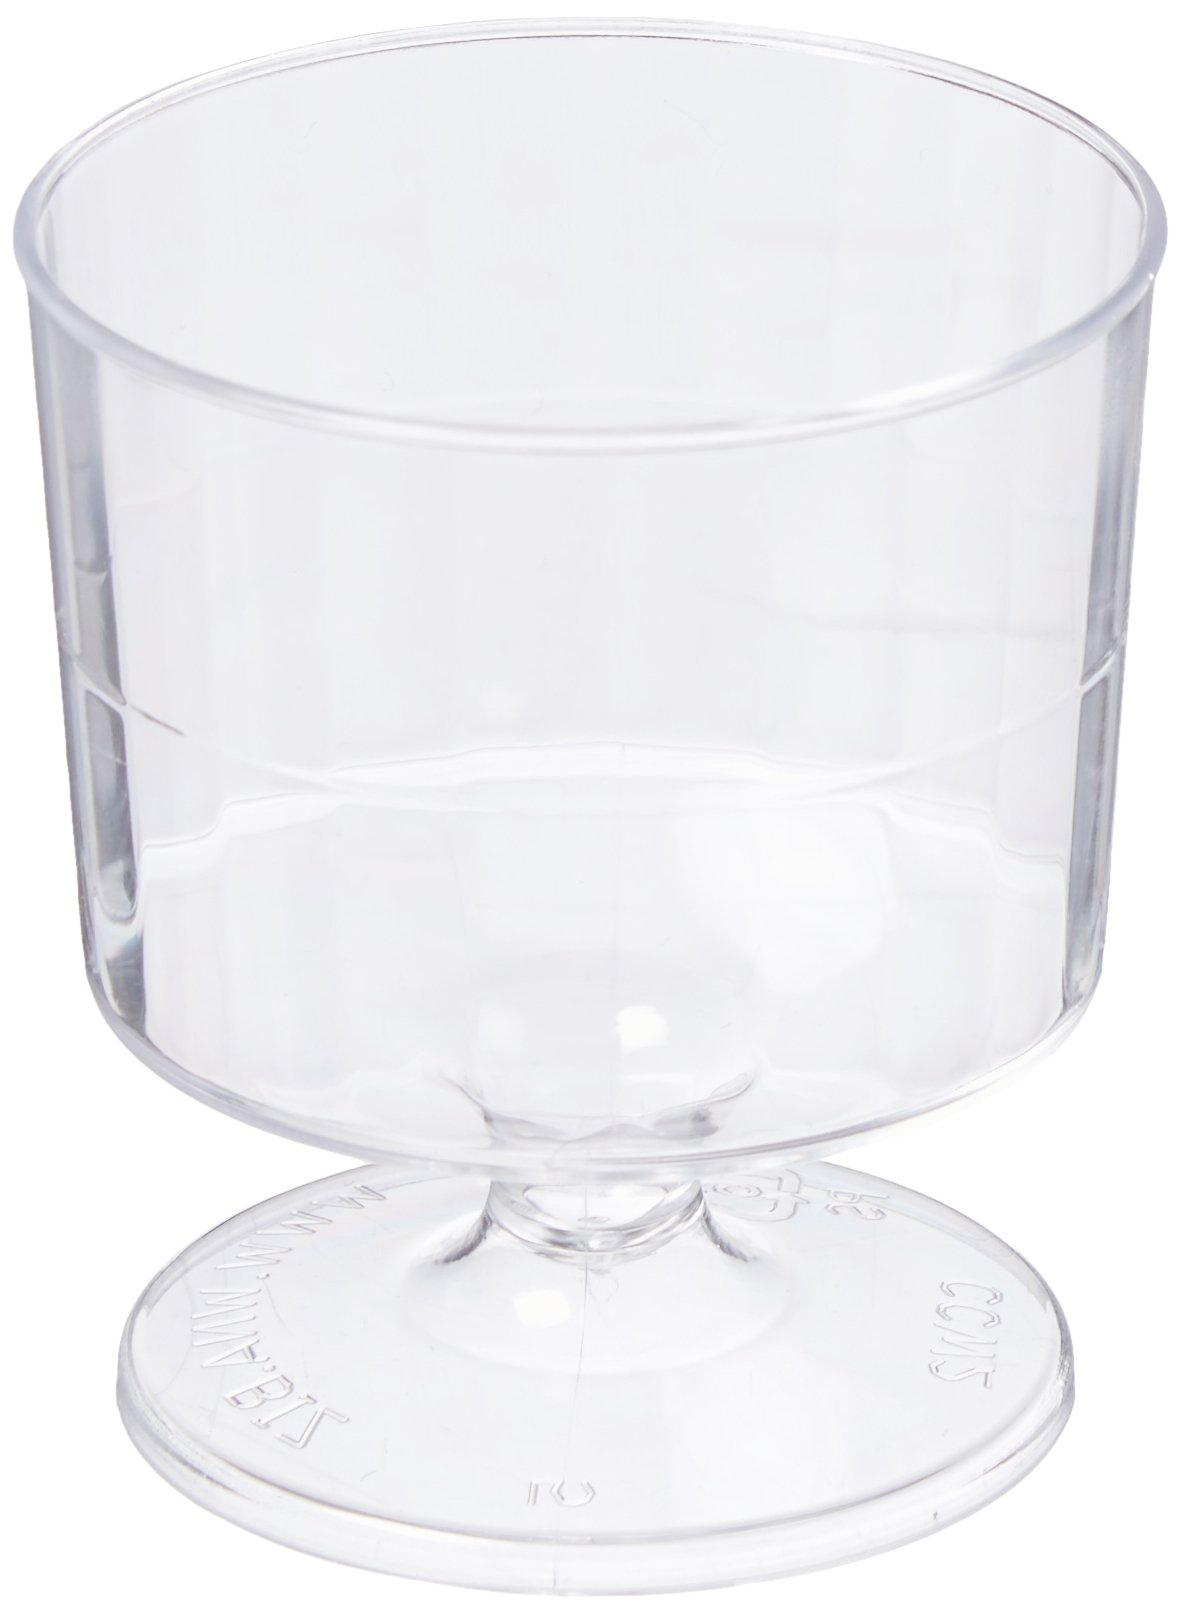 Classicware Rigid Plastic 1-Piece Pedestal Wine Glass, 2 Ounce Capacity, Clear (240-Count) by WNA